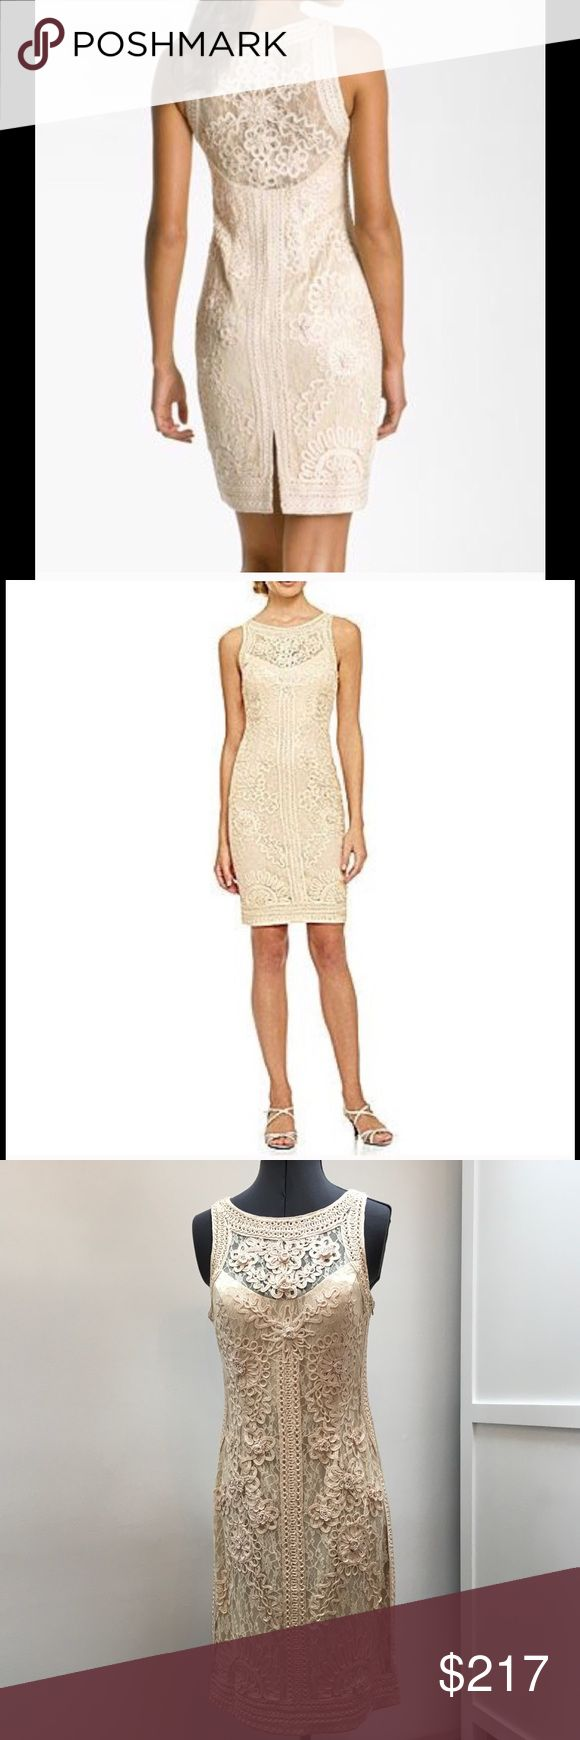 Intricate Sue Wong Sheath Absolutely stunning Sue Wong lace sheath dress in ivory. Slide into this dress that hugs and accentuates your curves perfectly. Intricate pattern that looks even better in person. Embroidered lace covers this dress, with lining in all the right places. The perfect special occasion dress that will make you the stand-out guest!  In mint condition. (First 2 pics are stock.  The rest are my dress:) Sue Wong Dresses